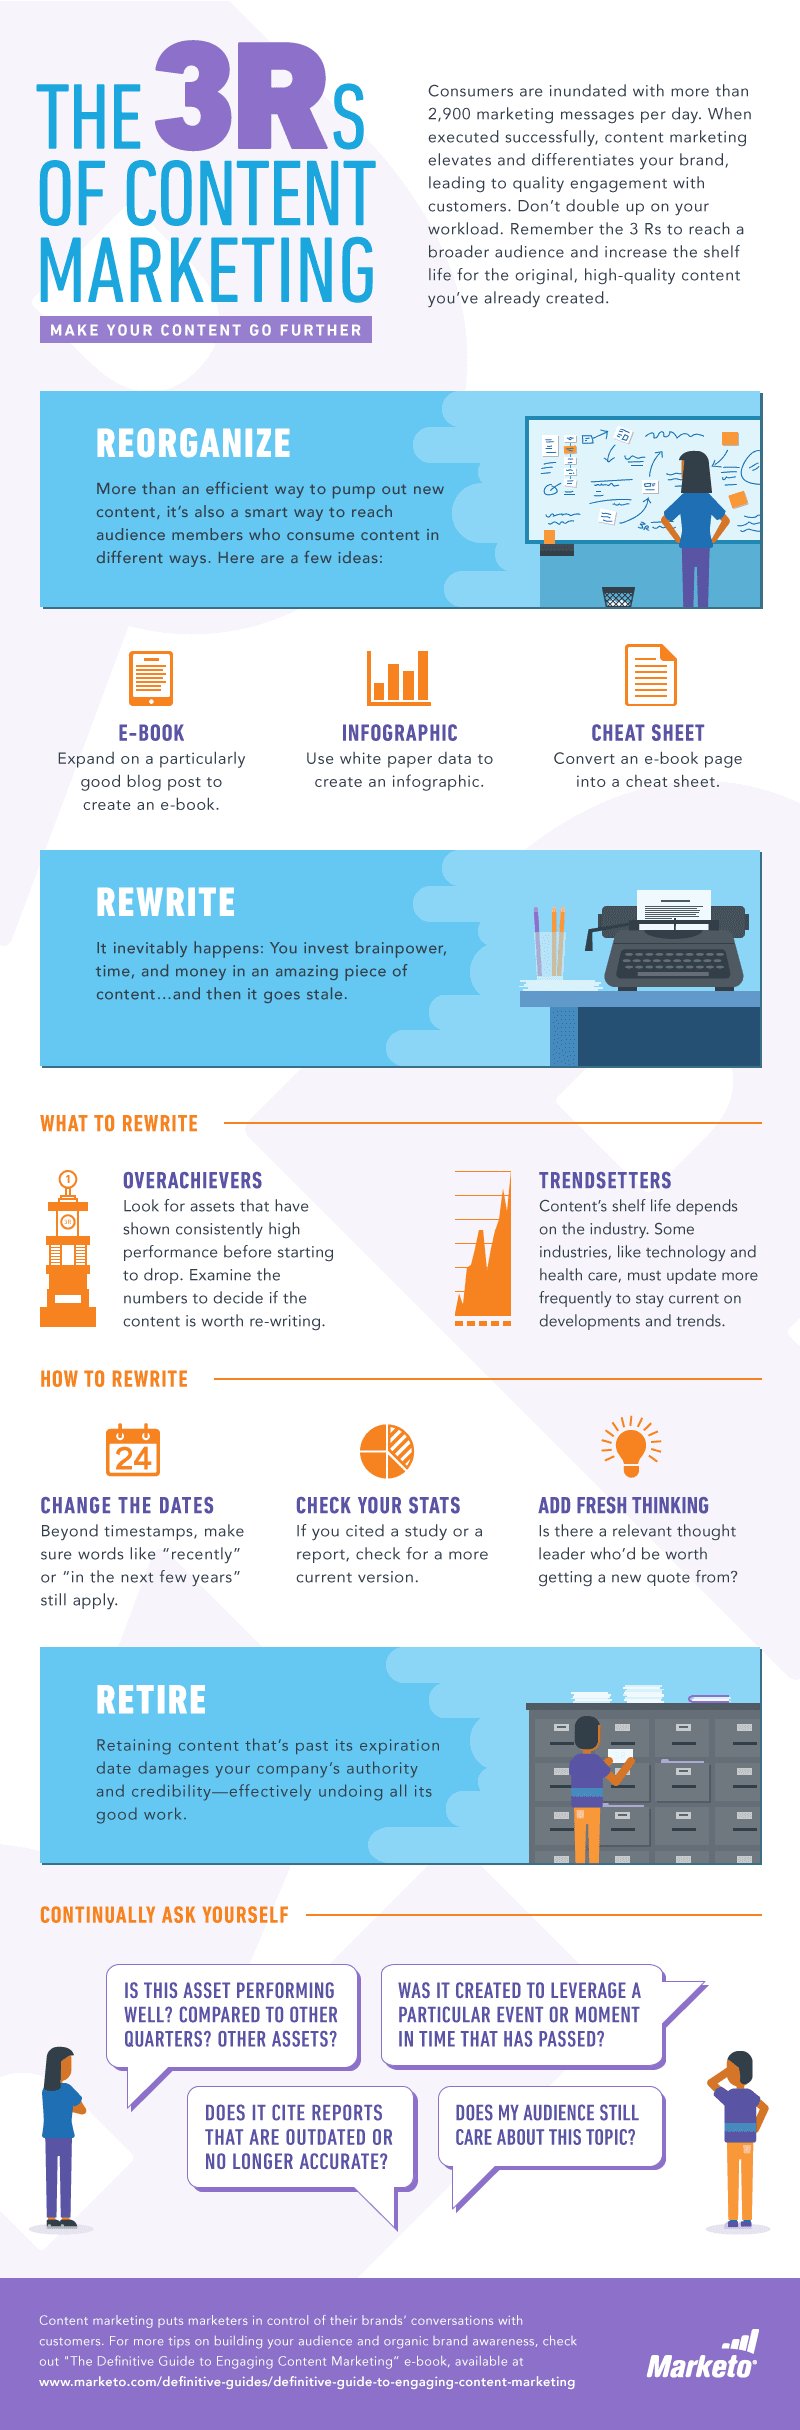 The 3 r's of content marketing: reorganize, retire, rewrite